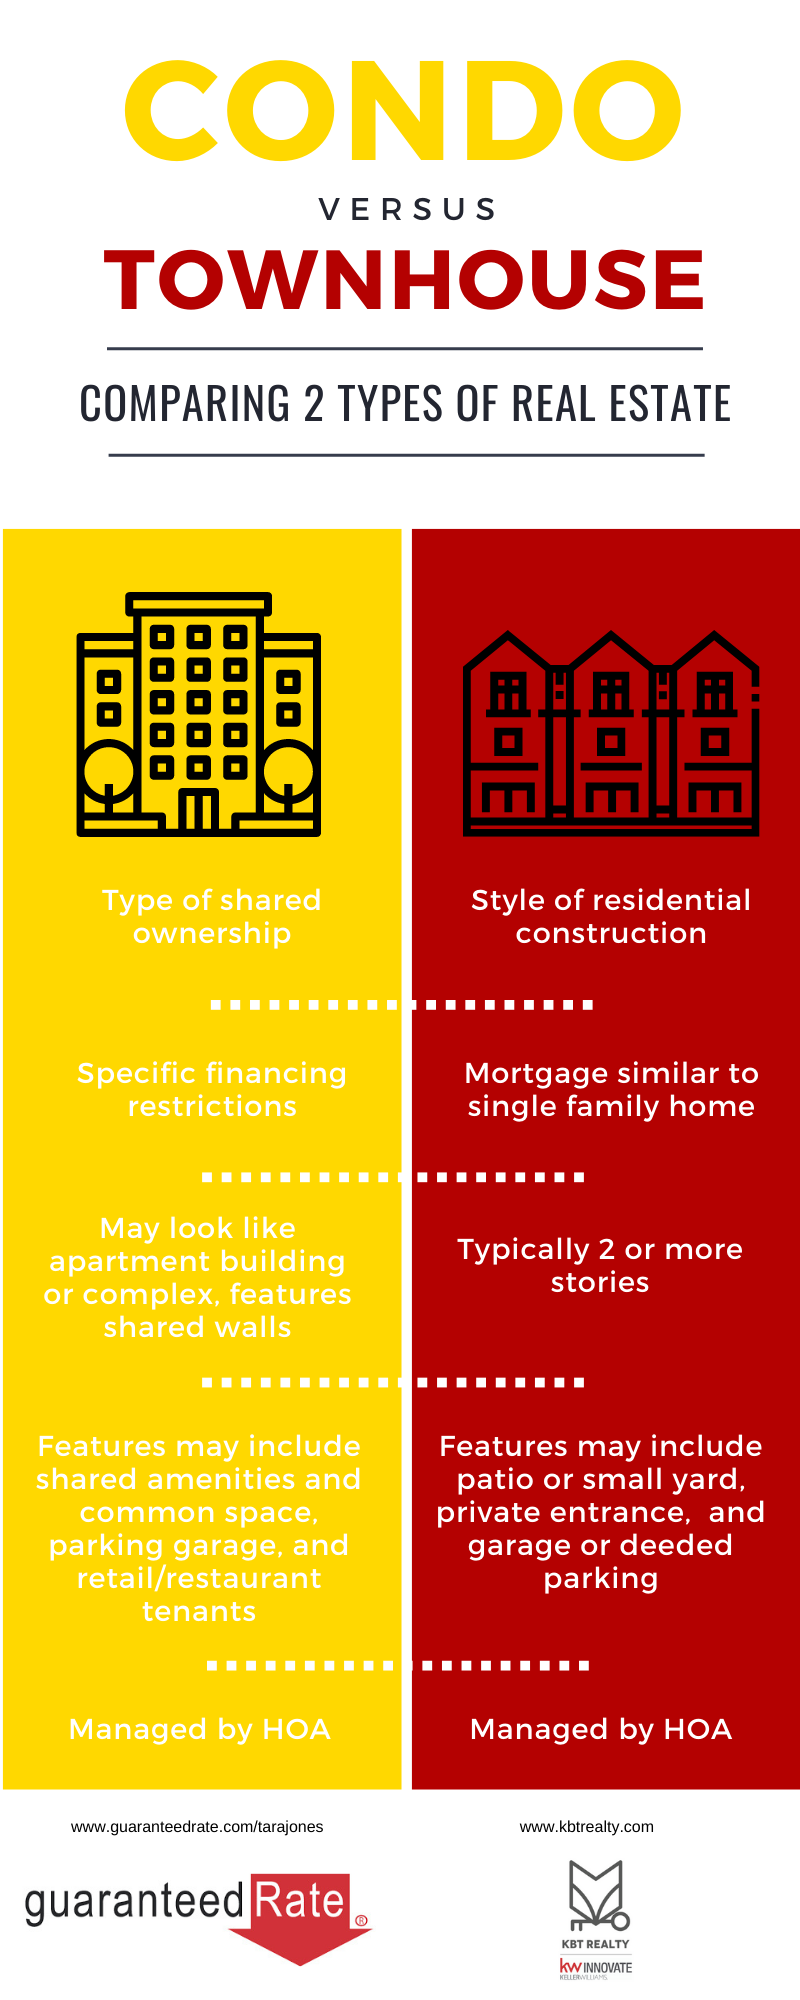 Condo vs Townhouse Infographic.png